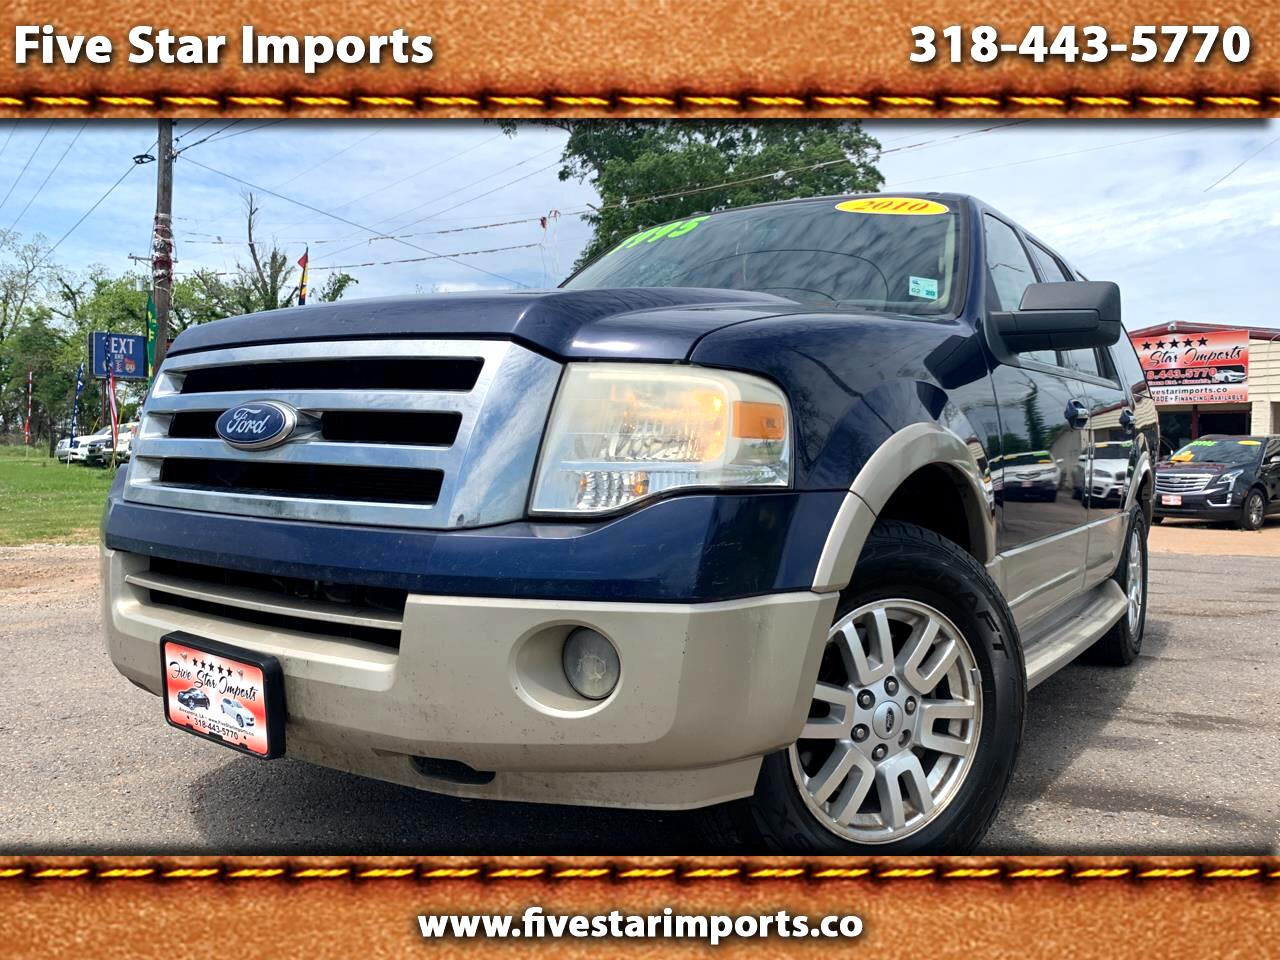 Ford Expedition 2WD 4dr Eddie Bauer 2010